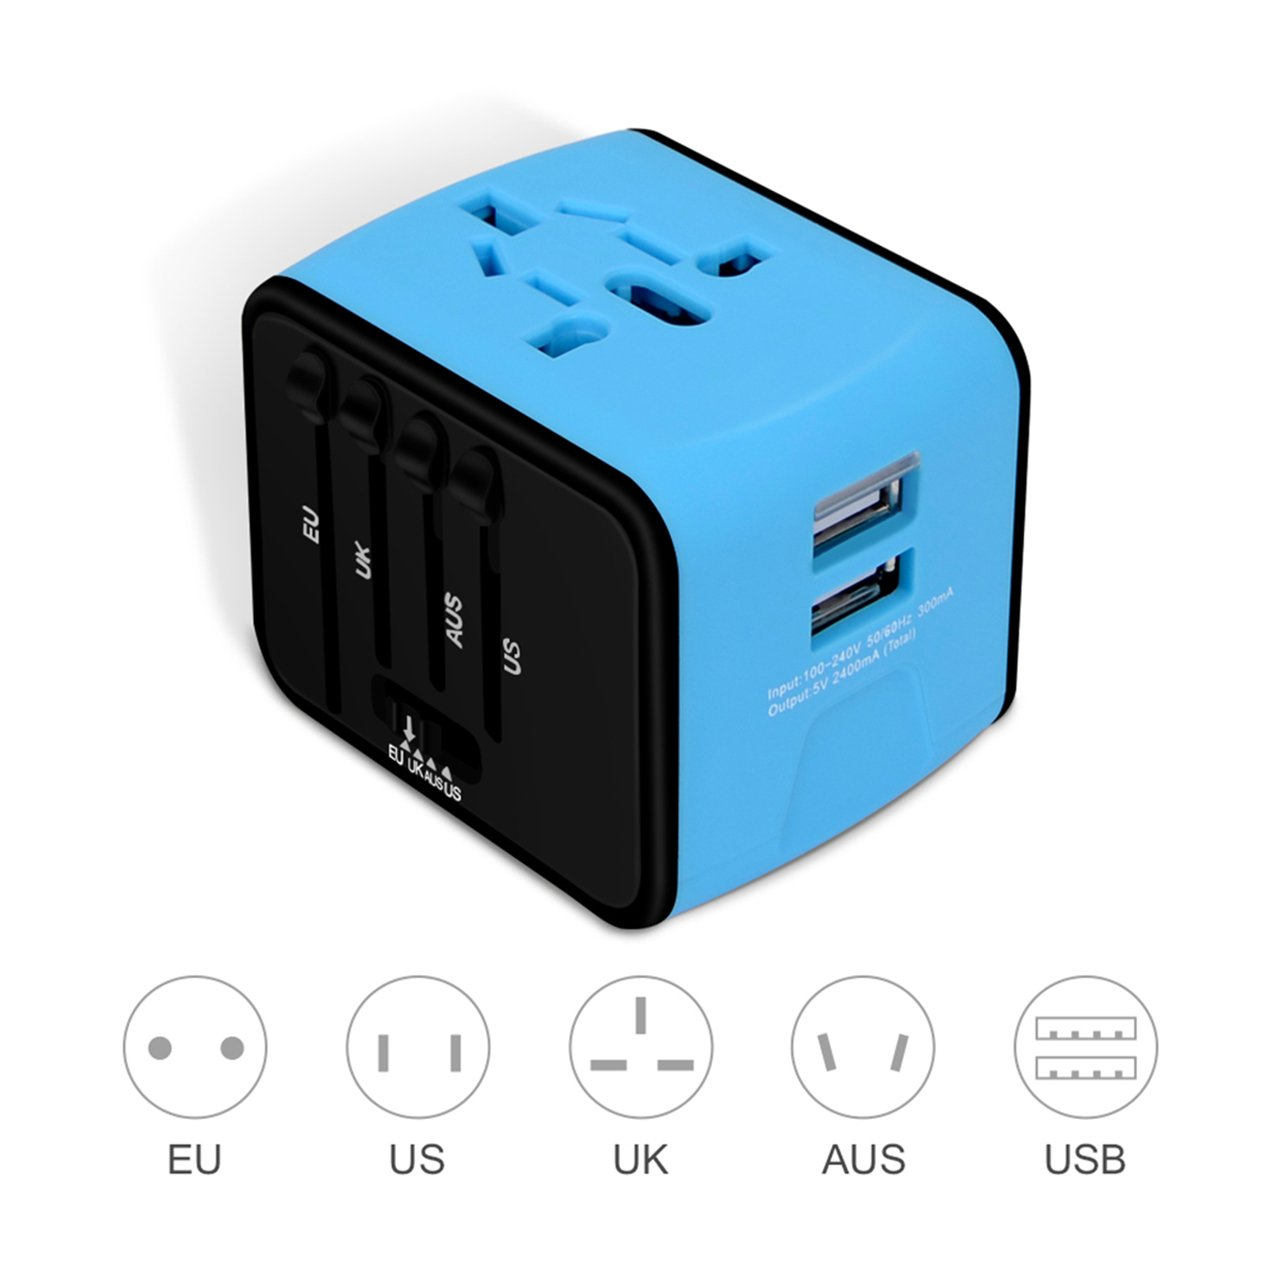 International Power Adapter, Universal Travel Adapter, European Power Adapter, with High Speed 2.4A 2-port USB Charger Worldwide AC Wall Outlet Plugs For Business Travel of US, EU, UK, AU